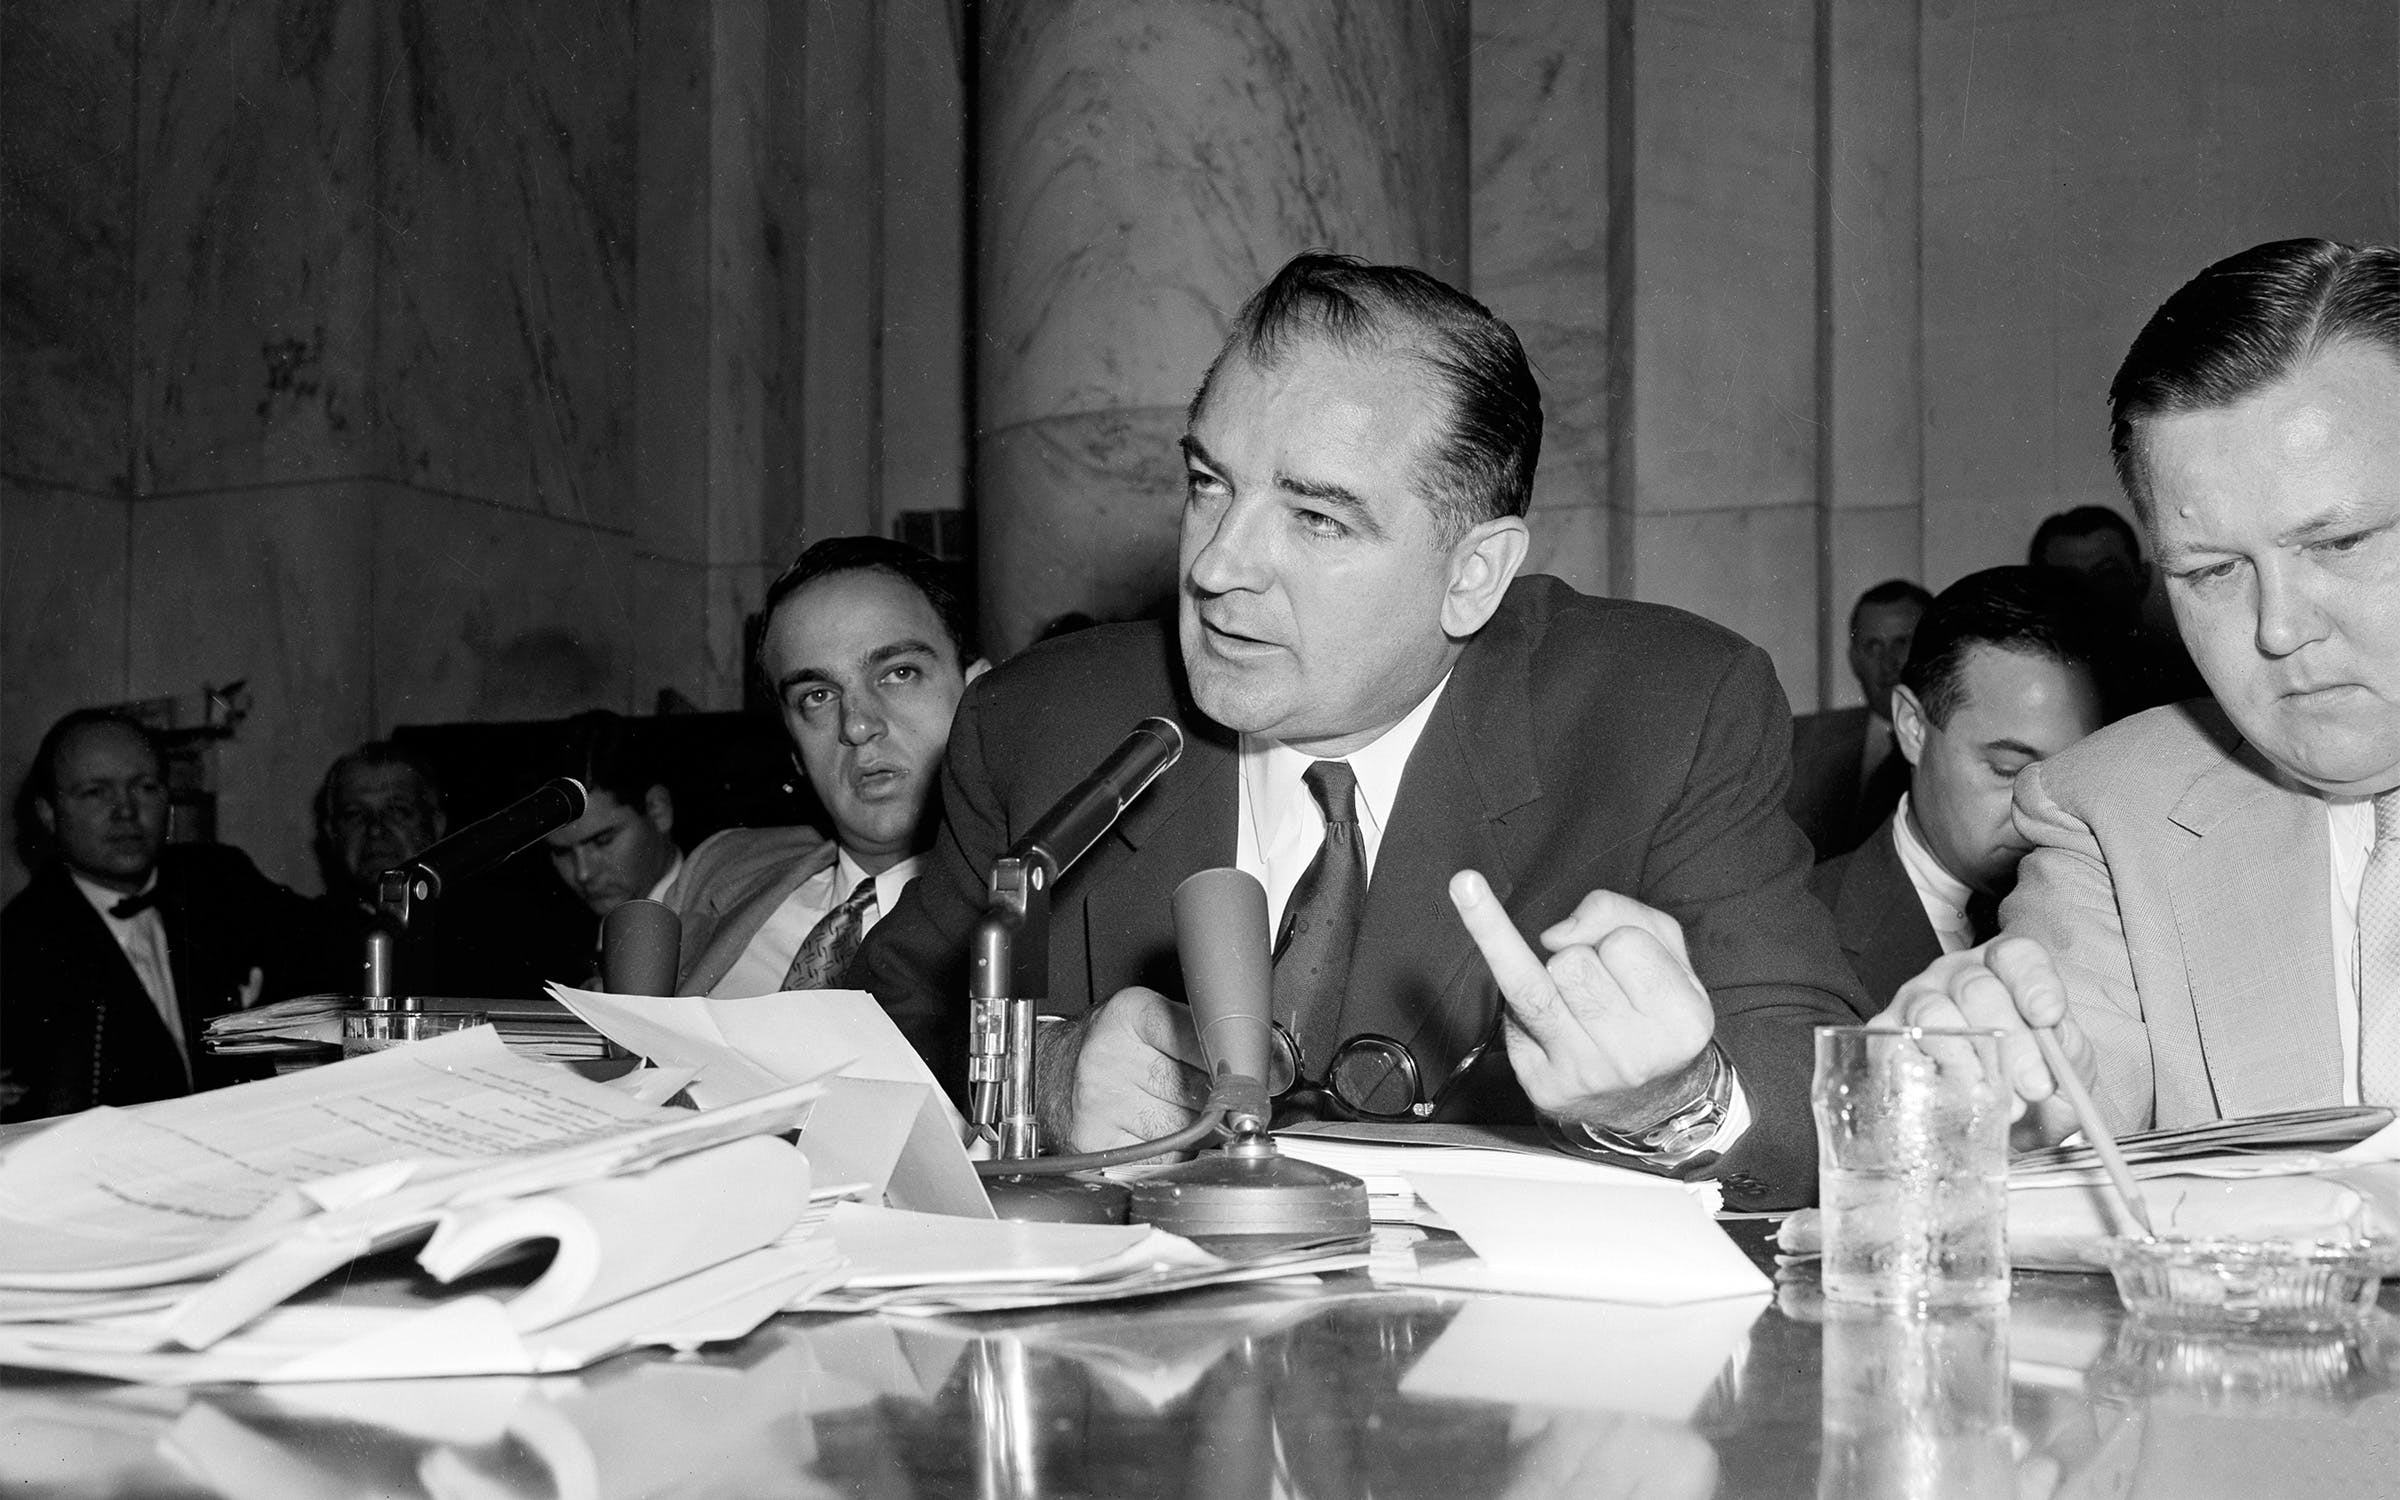 Sen. Joseph McCarthy gestures as he directs a question to Army Secretary Robert Stevens during the afternoon session of the hearings into his differences with high Pentagon officials, in Washington, D.C., on April 28, 1954. McCarthy's aide, Roy Cohn, is at left.